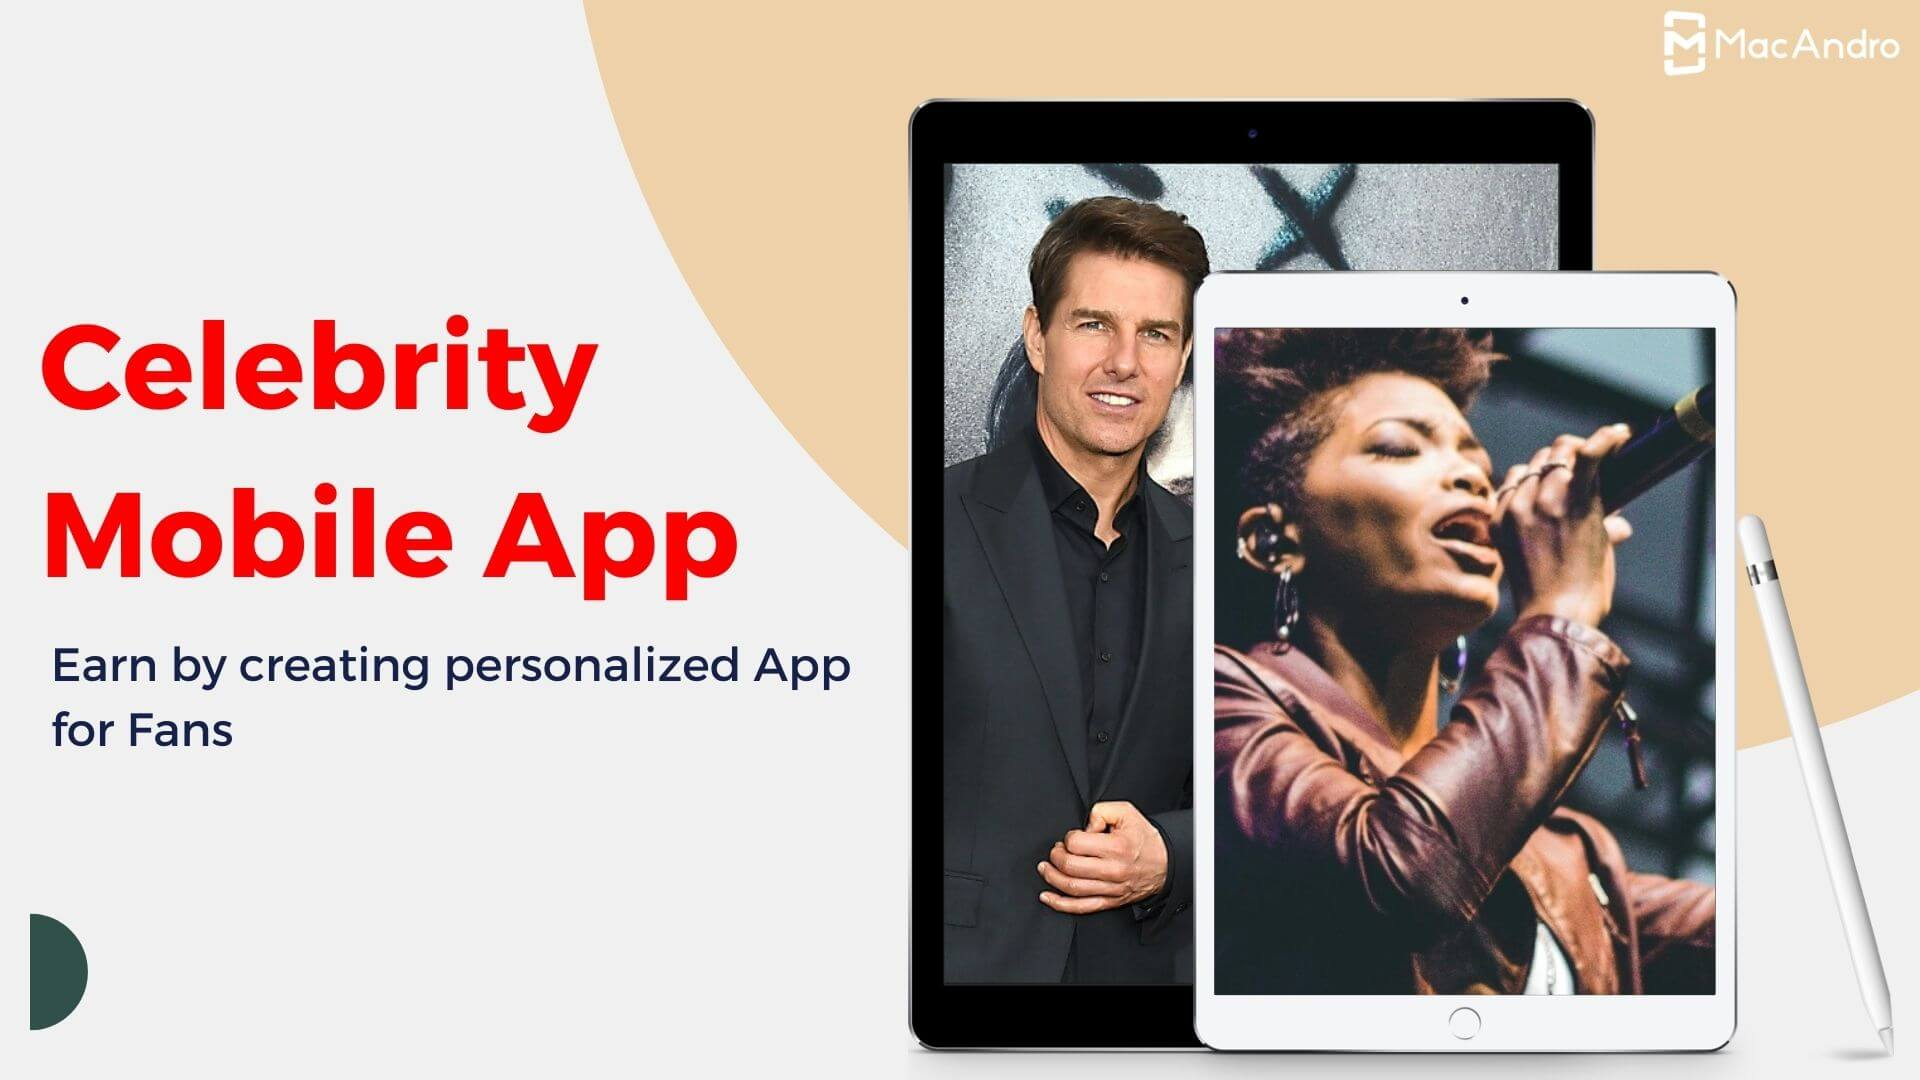 Celebrity Mobile app - A Digital Solution To Create Brand Reputation For Celebrities